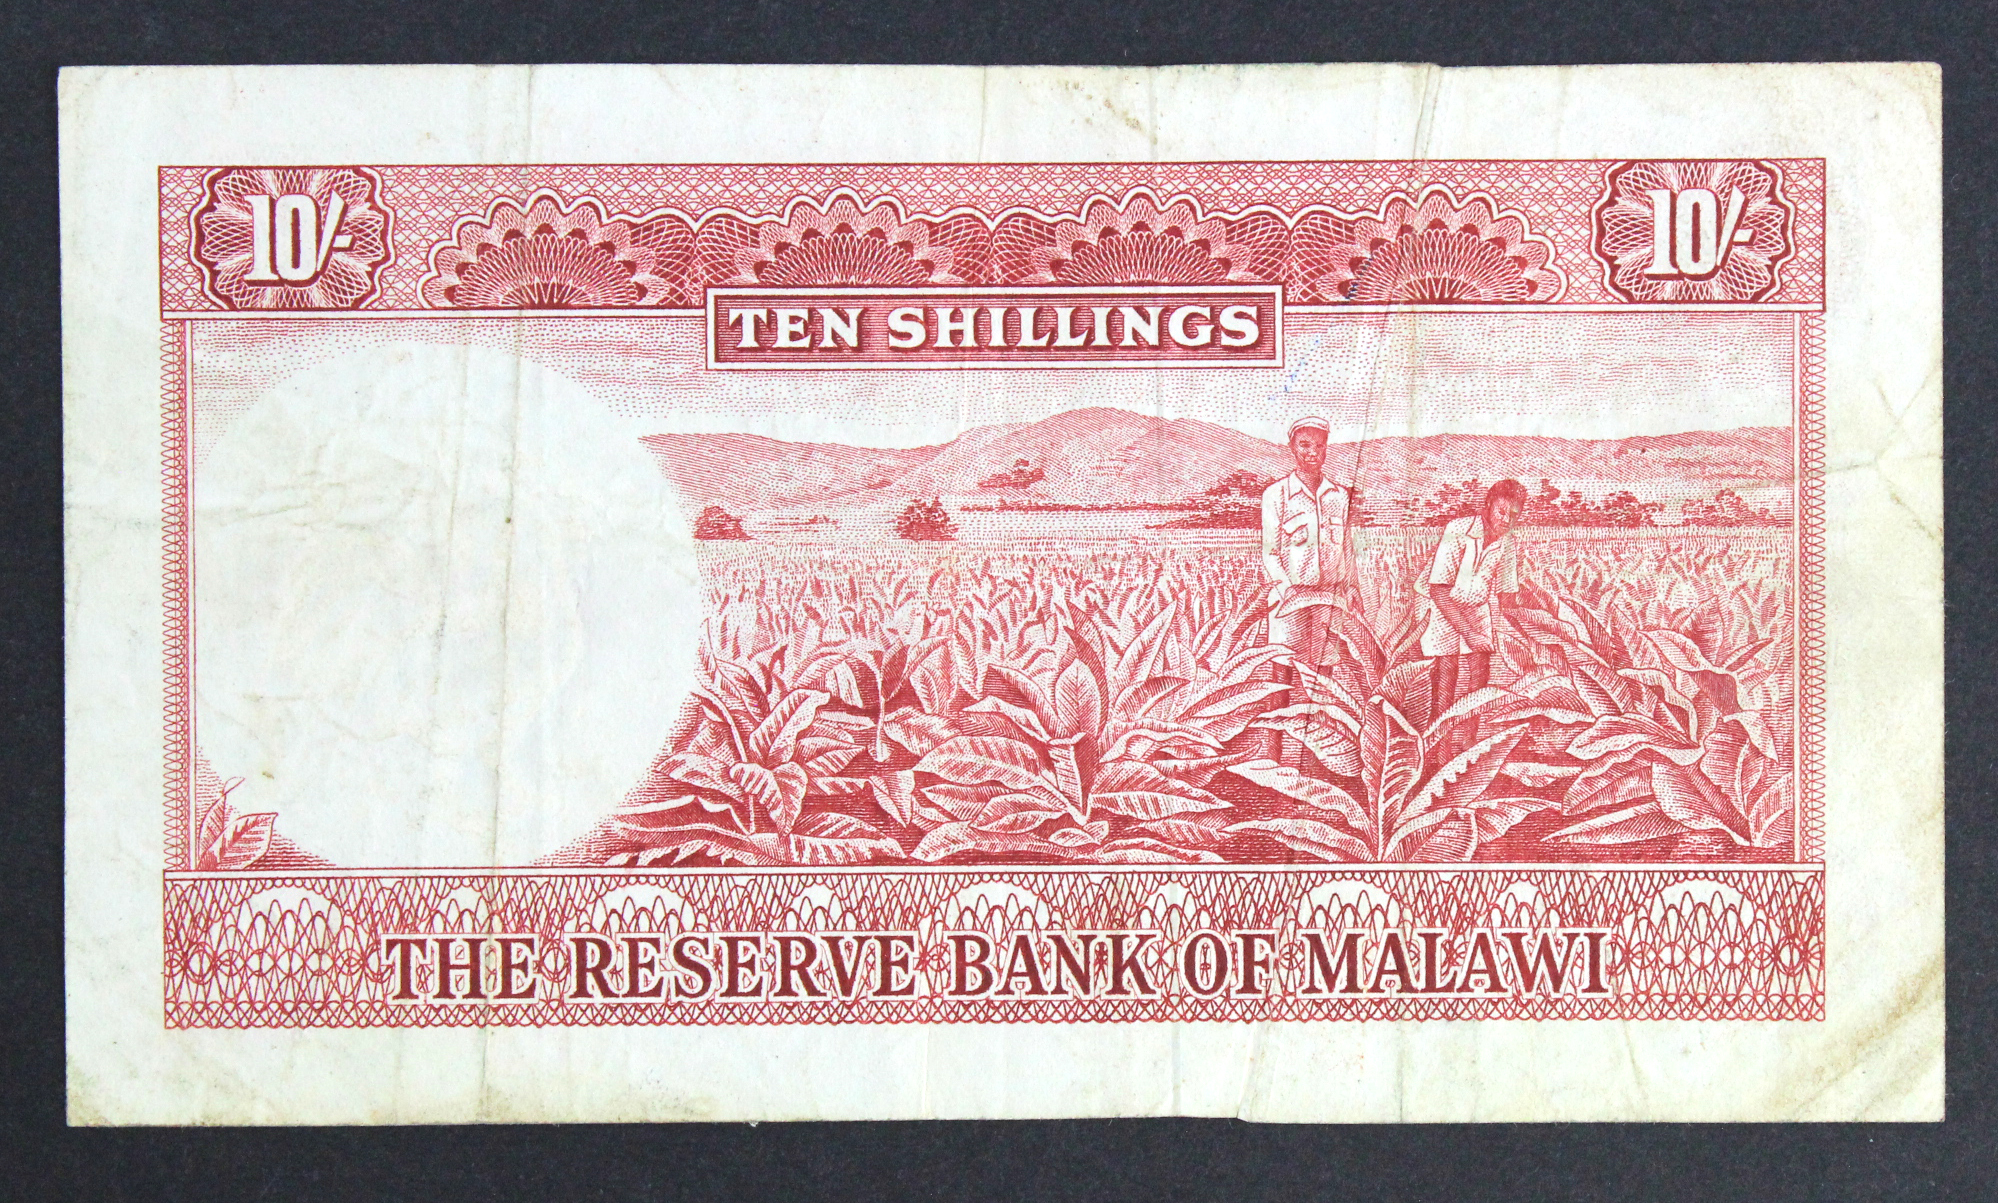 Malawi 10 Shillings ERROR note dated 1964, a strong GUTTER FOLD error, rare first issue signed - Image 2 of 2